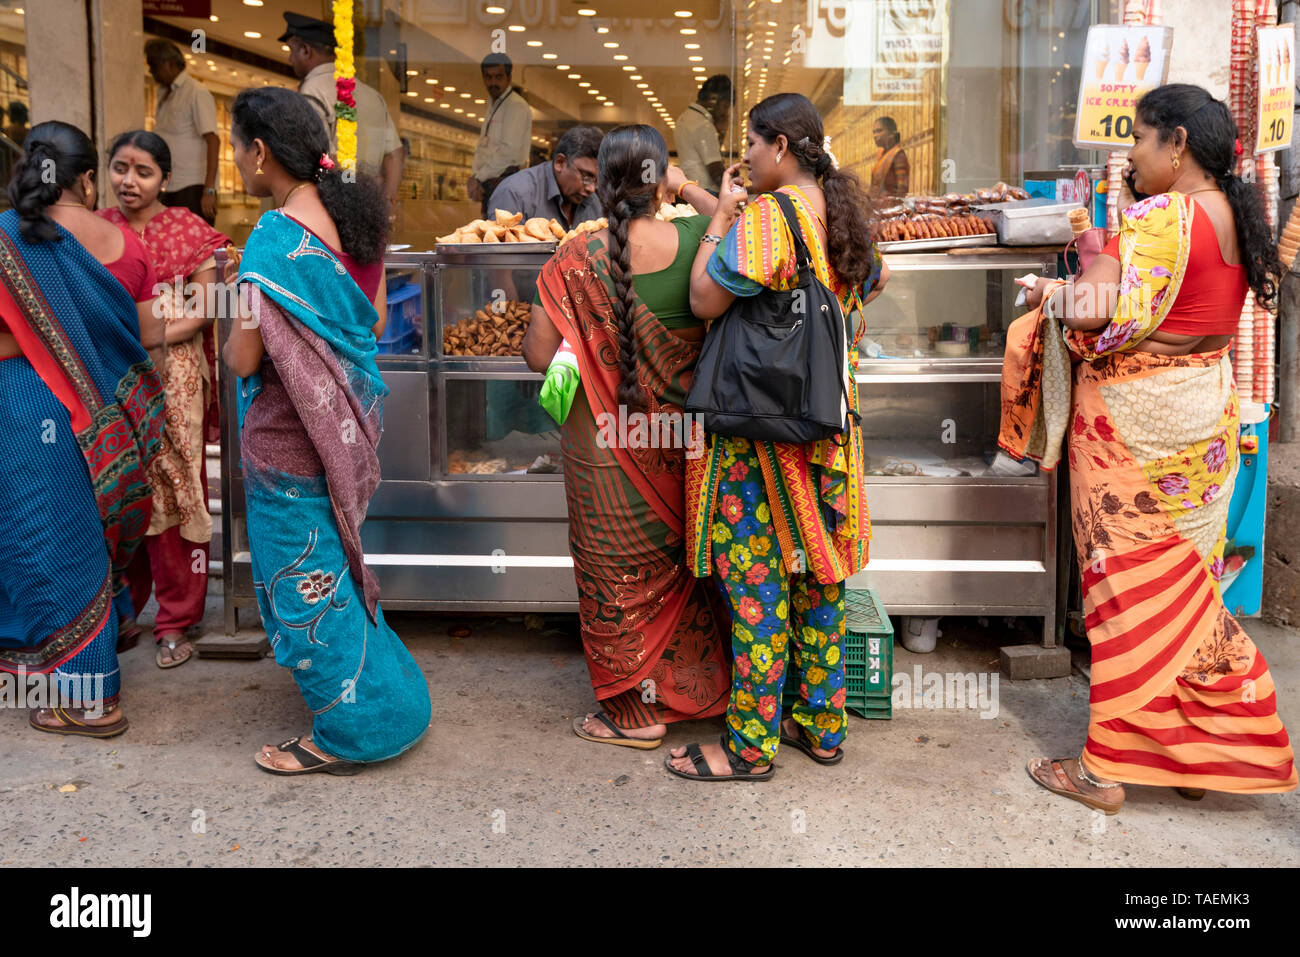 Horizontal view of ladies queueing at a streetfood stall in India. Stock Photo